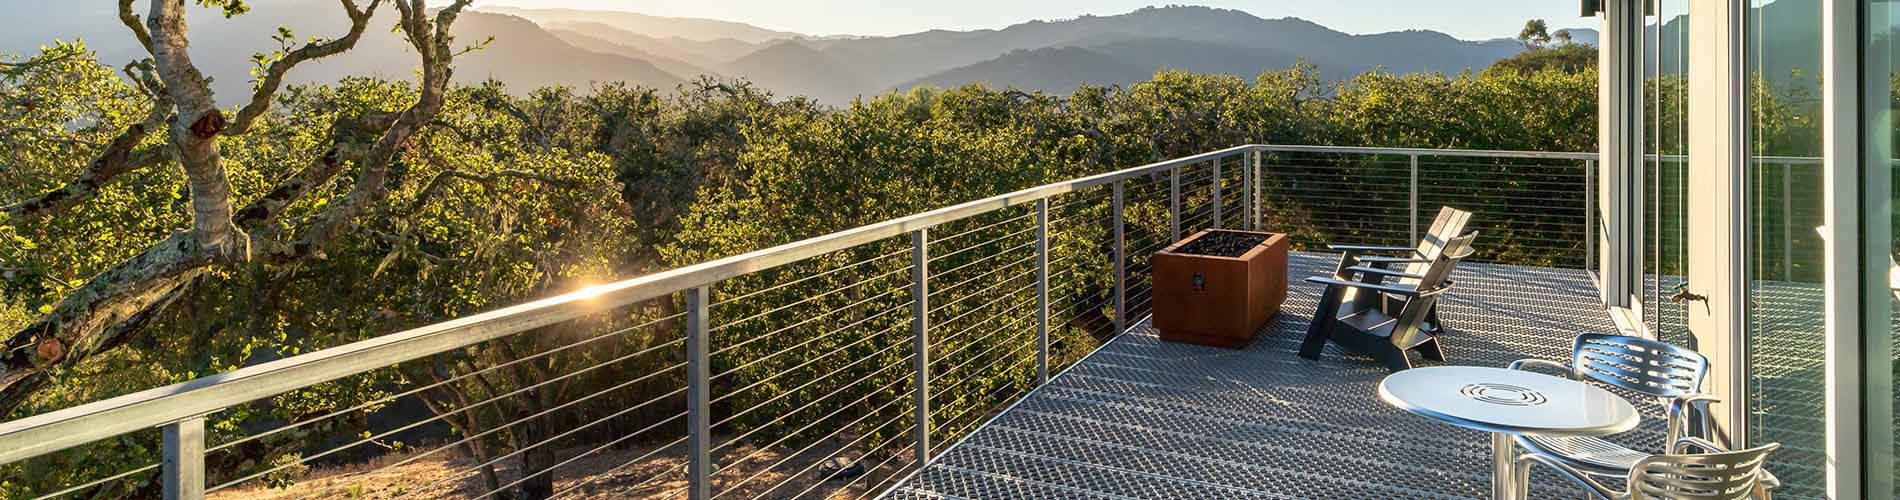 Sustainable Building and Design | McNICHOLS®